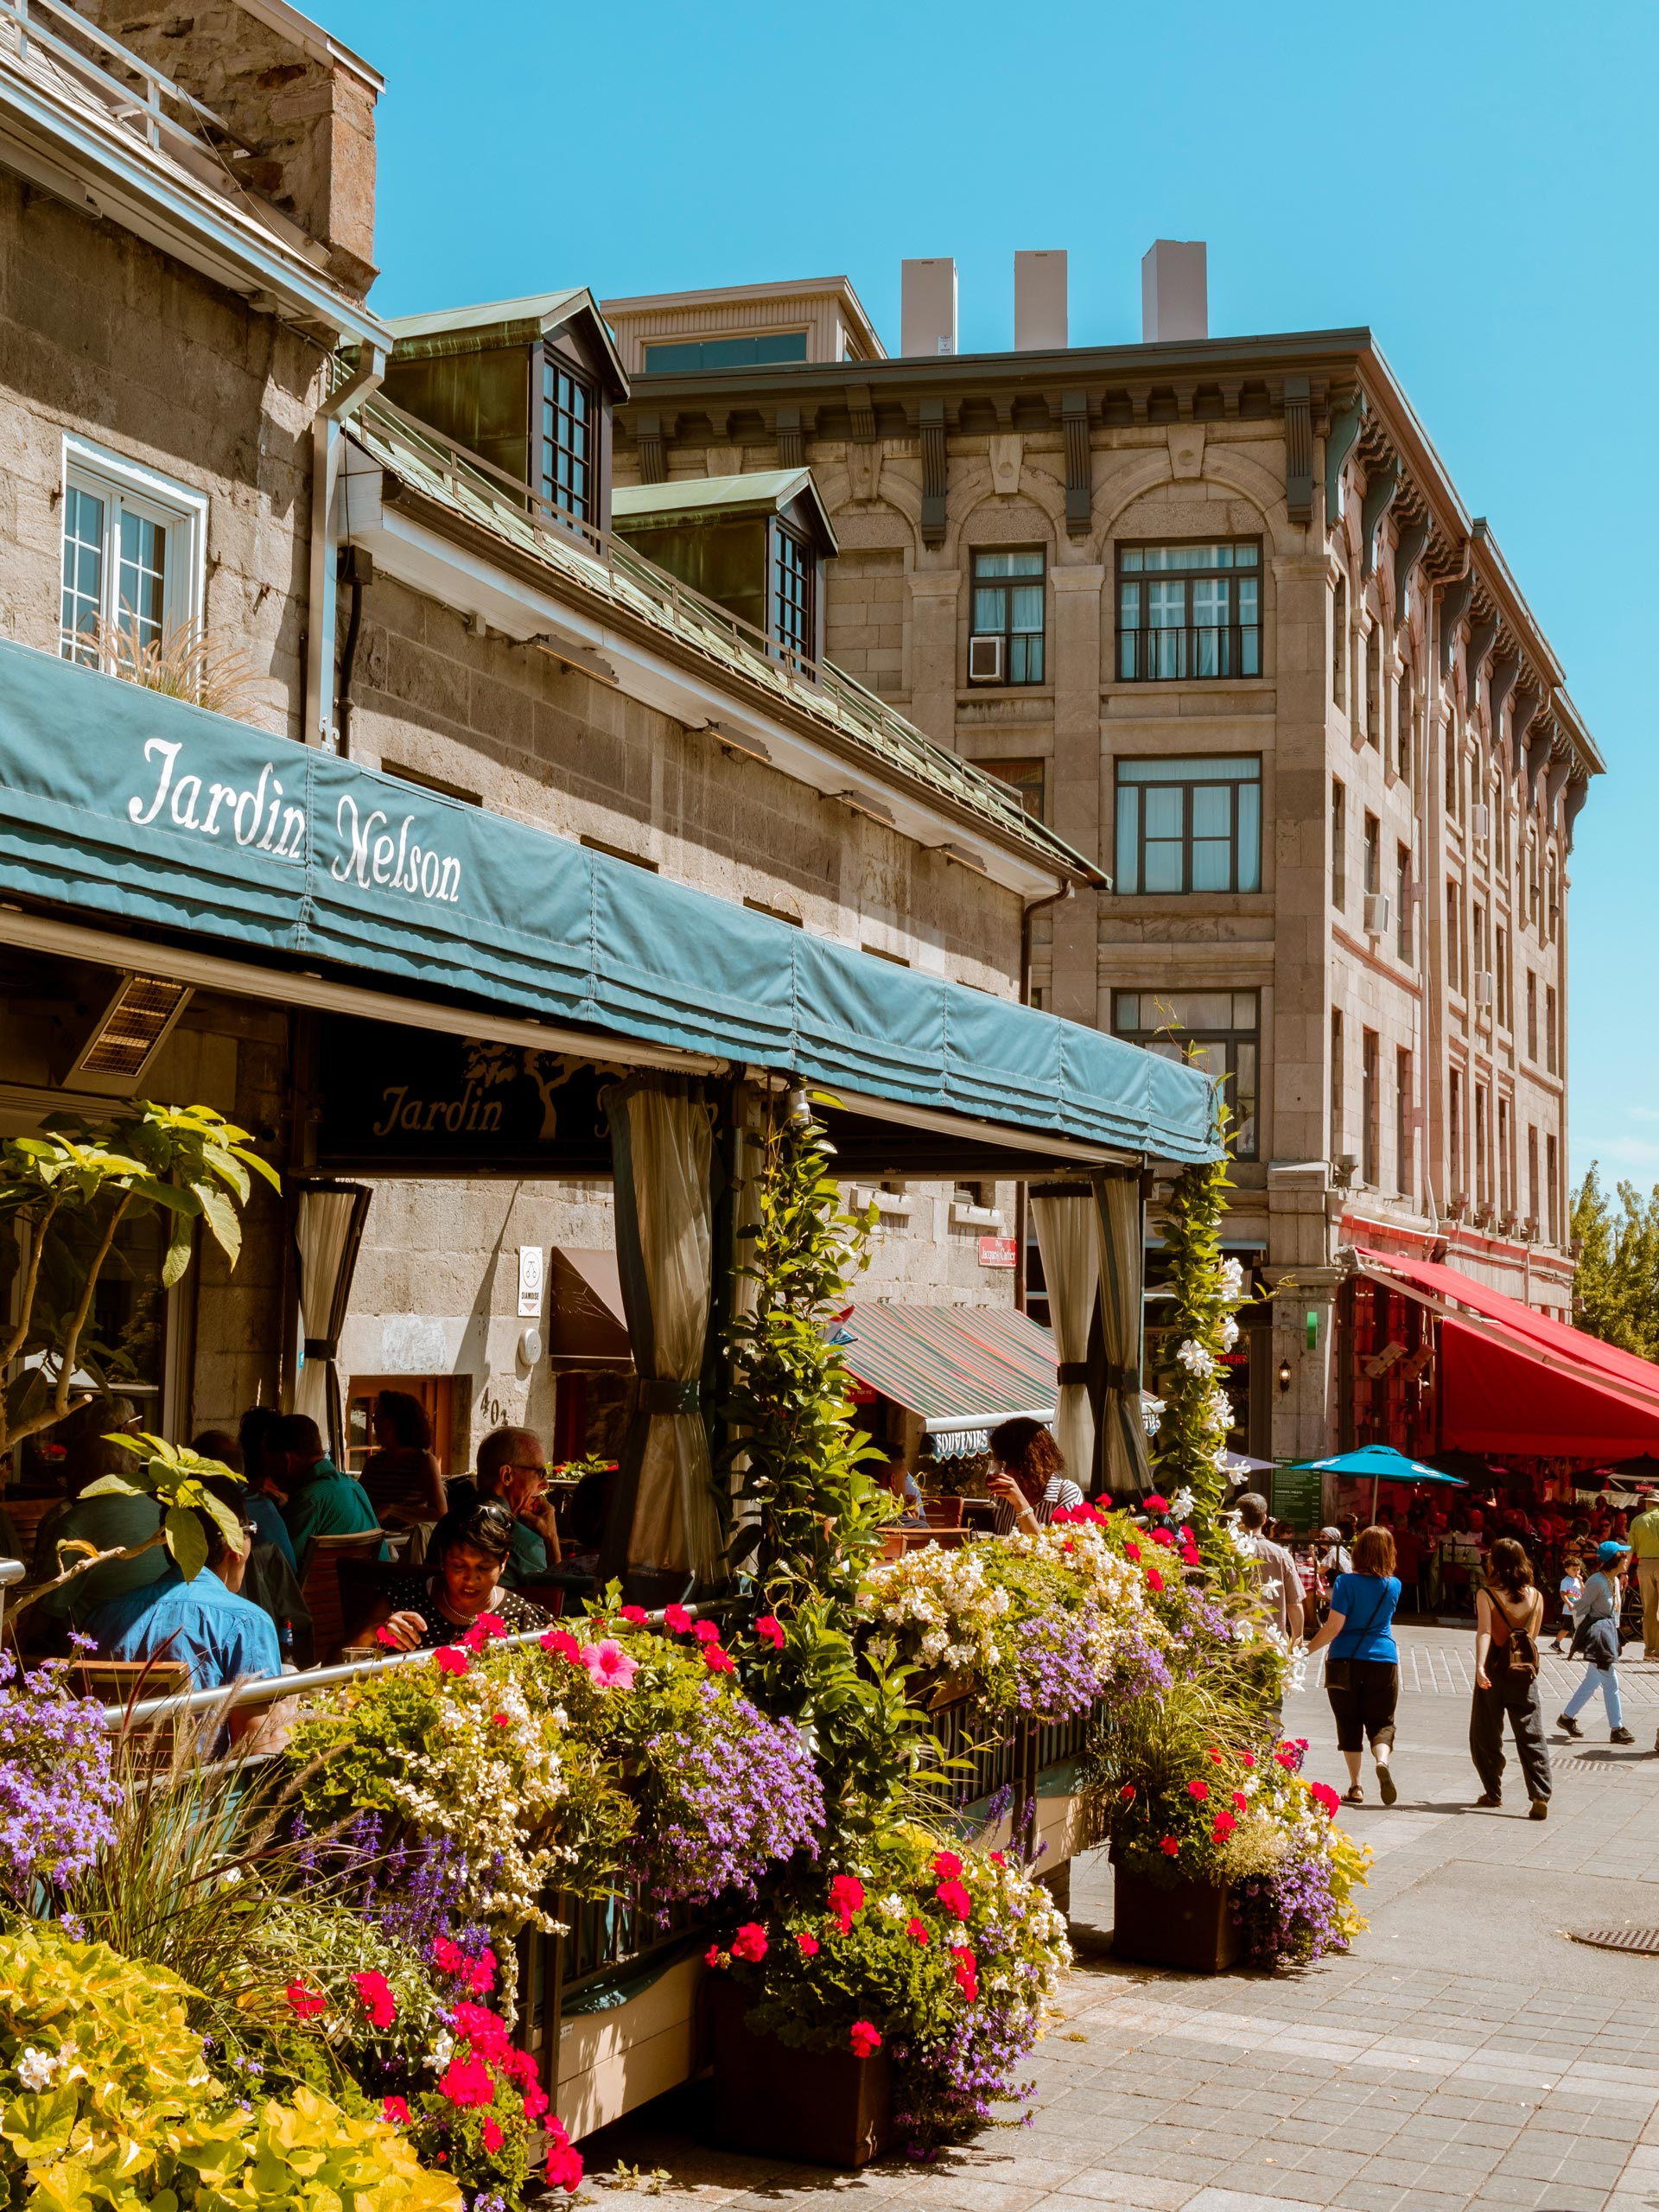 Montreal's Old City historic district